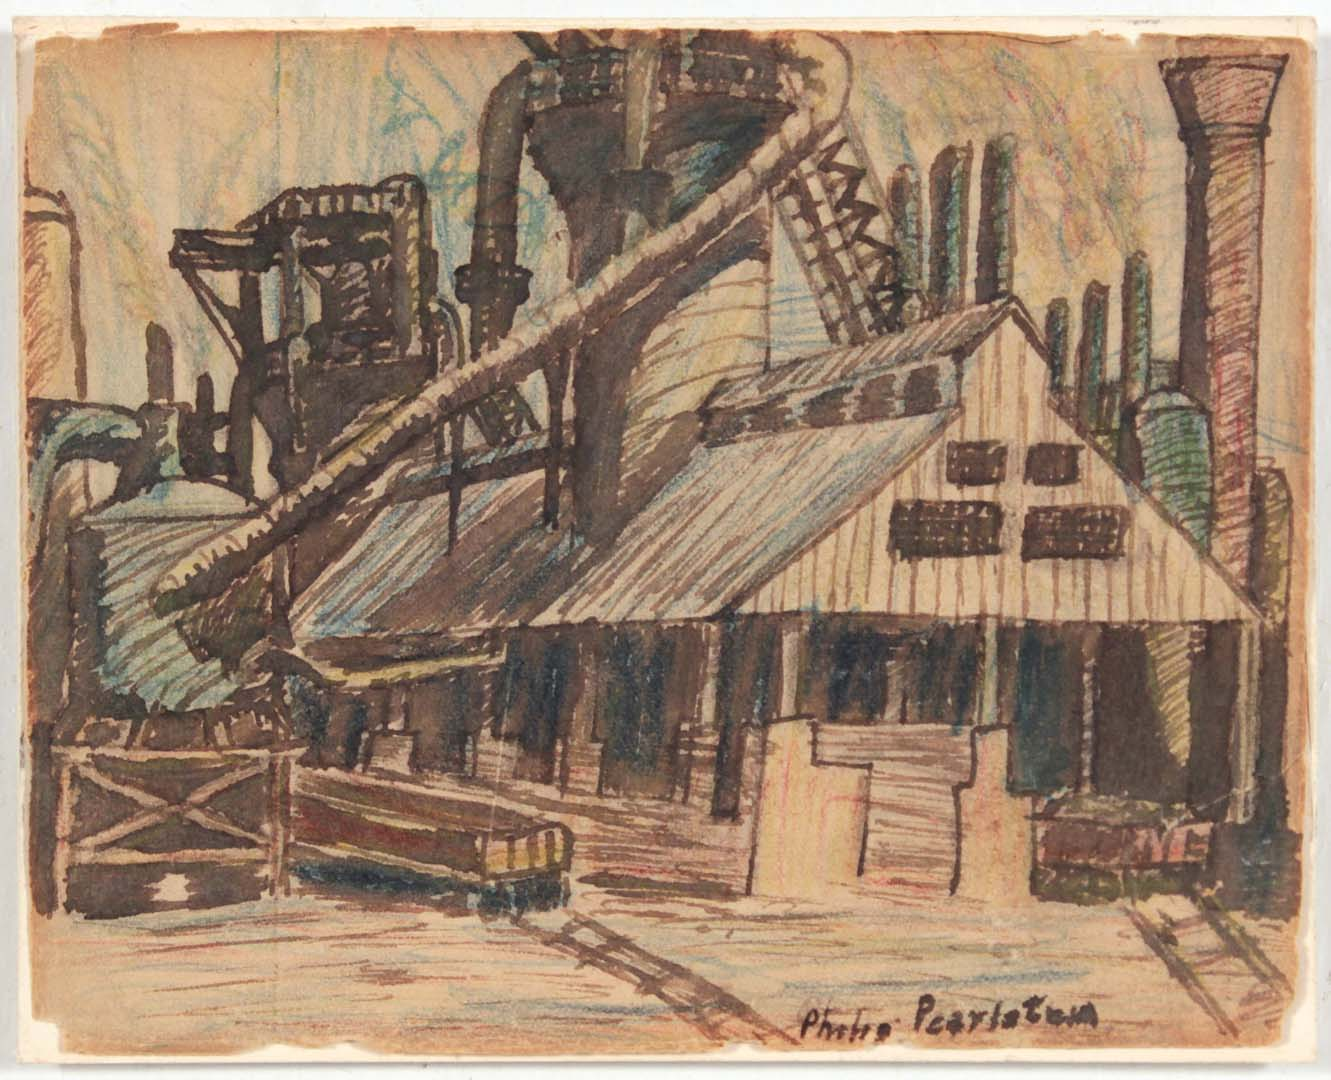 1949 Image 38 (Pittsburg Factory) Wash and Crayon on Paper 4 x 5